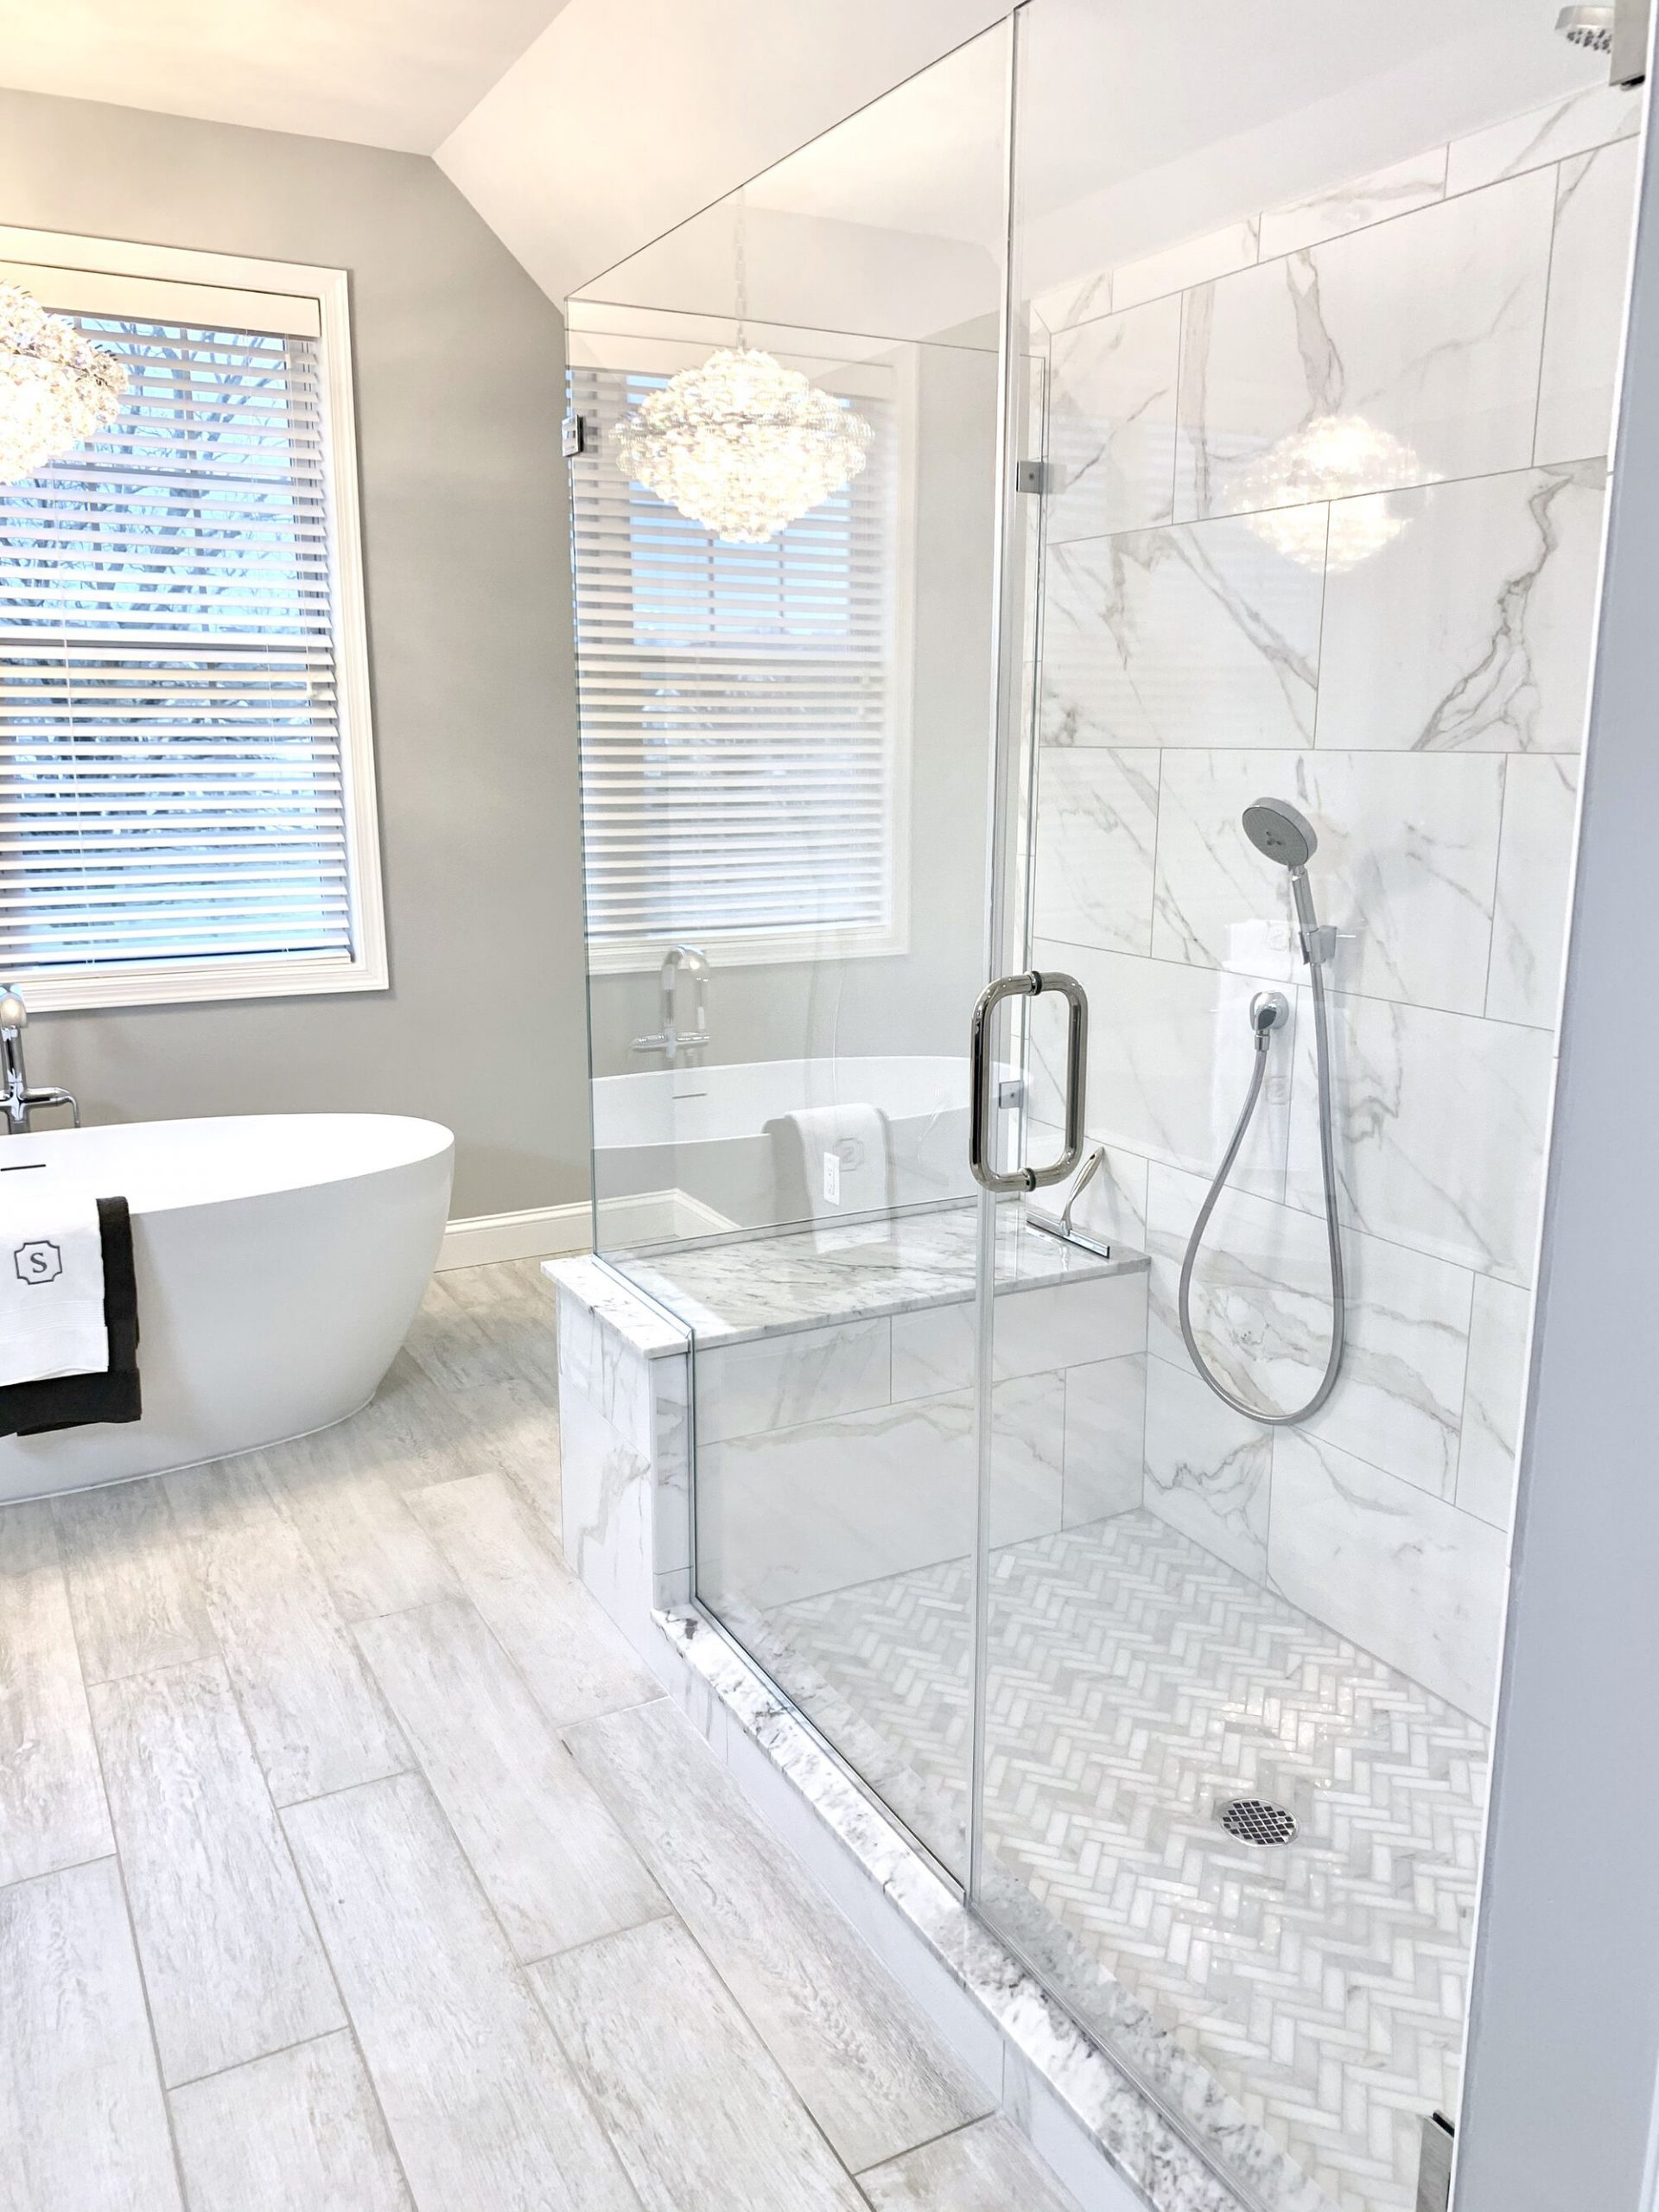 Master Bath Remodeled with Freestanding Tub, Custom Shower with Bench and Wrap Around Glass in Sparta, Sussex County NJ